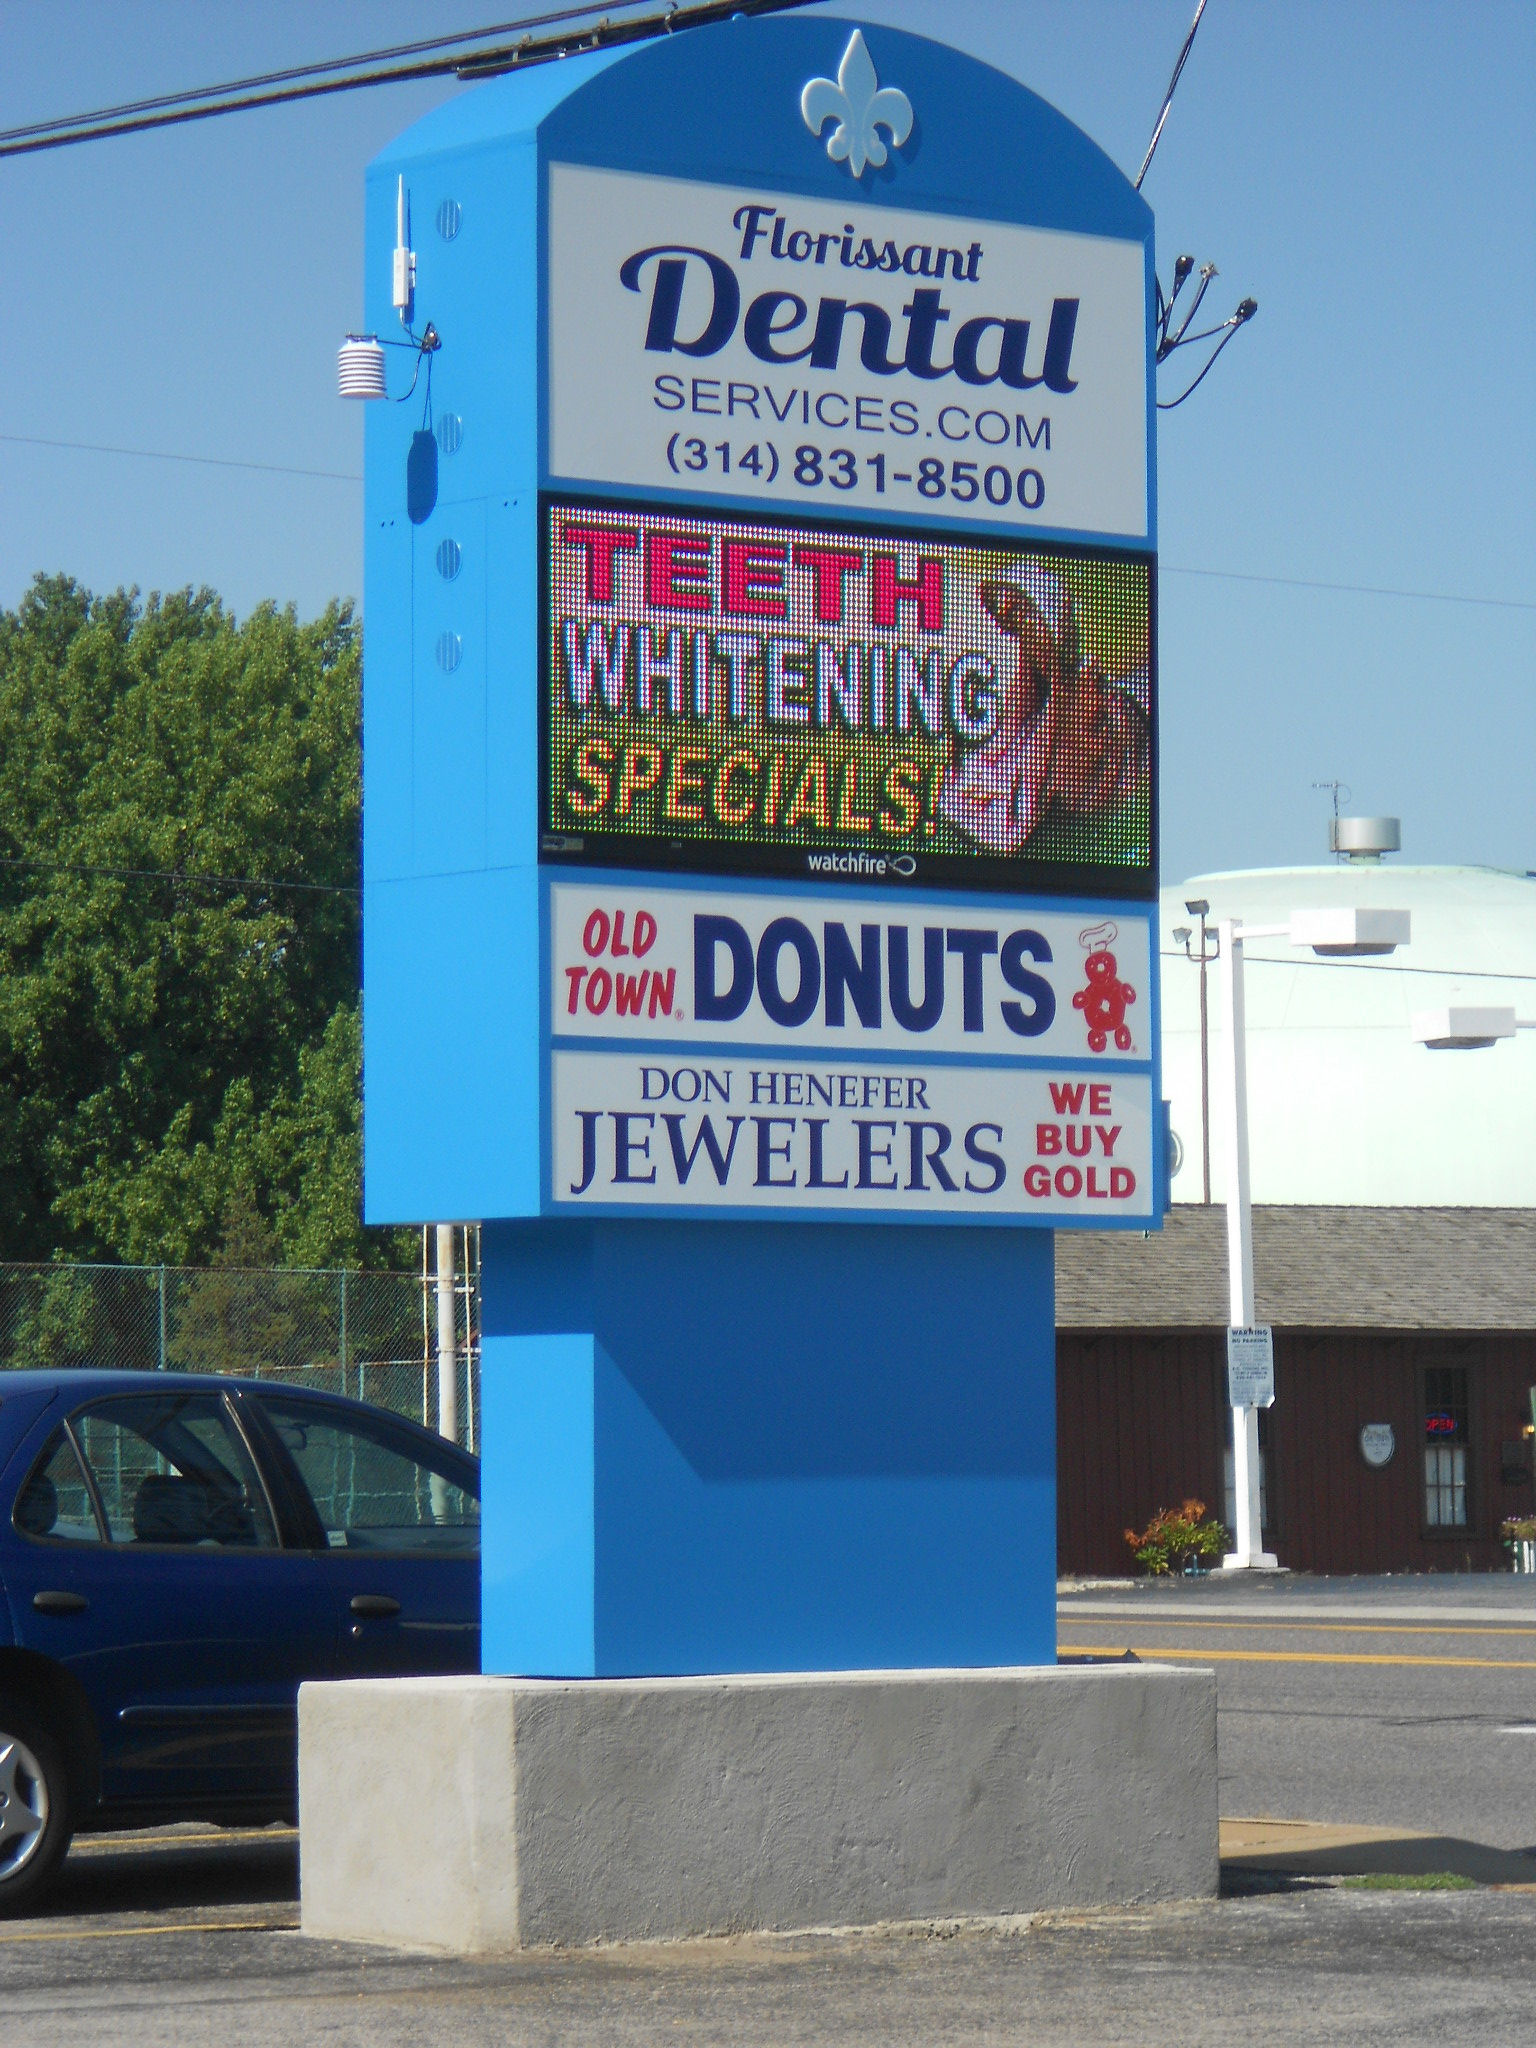 Florissant Dental Services